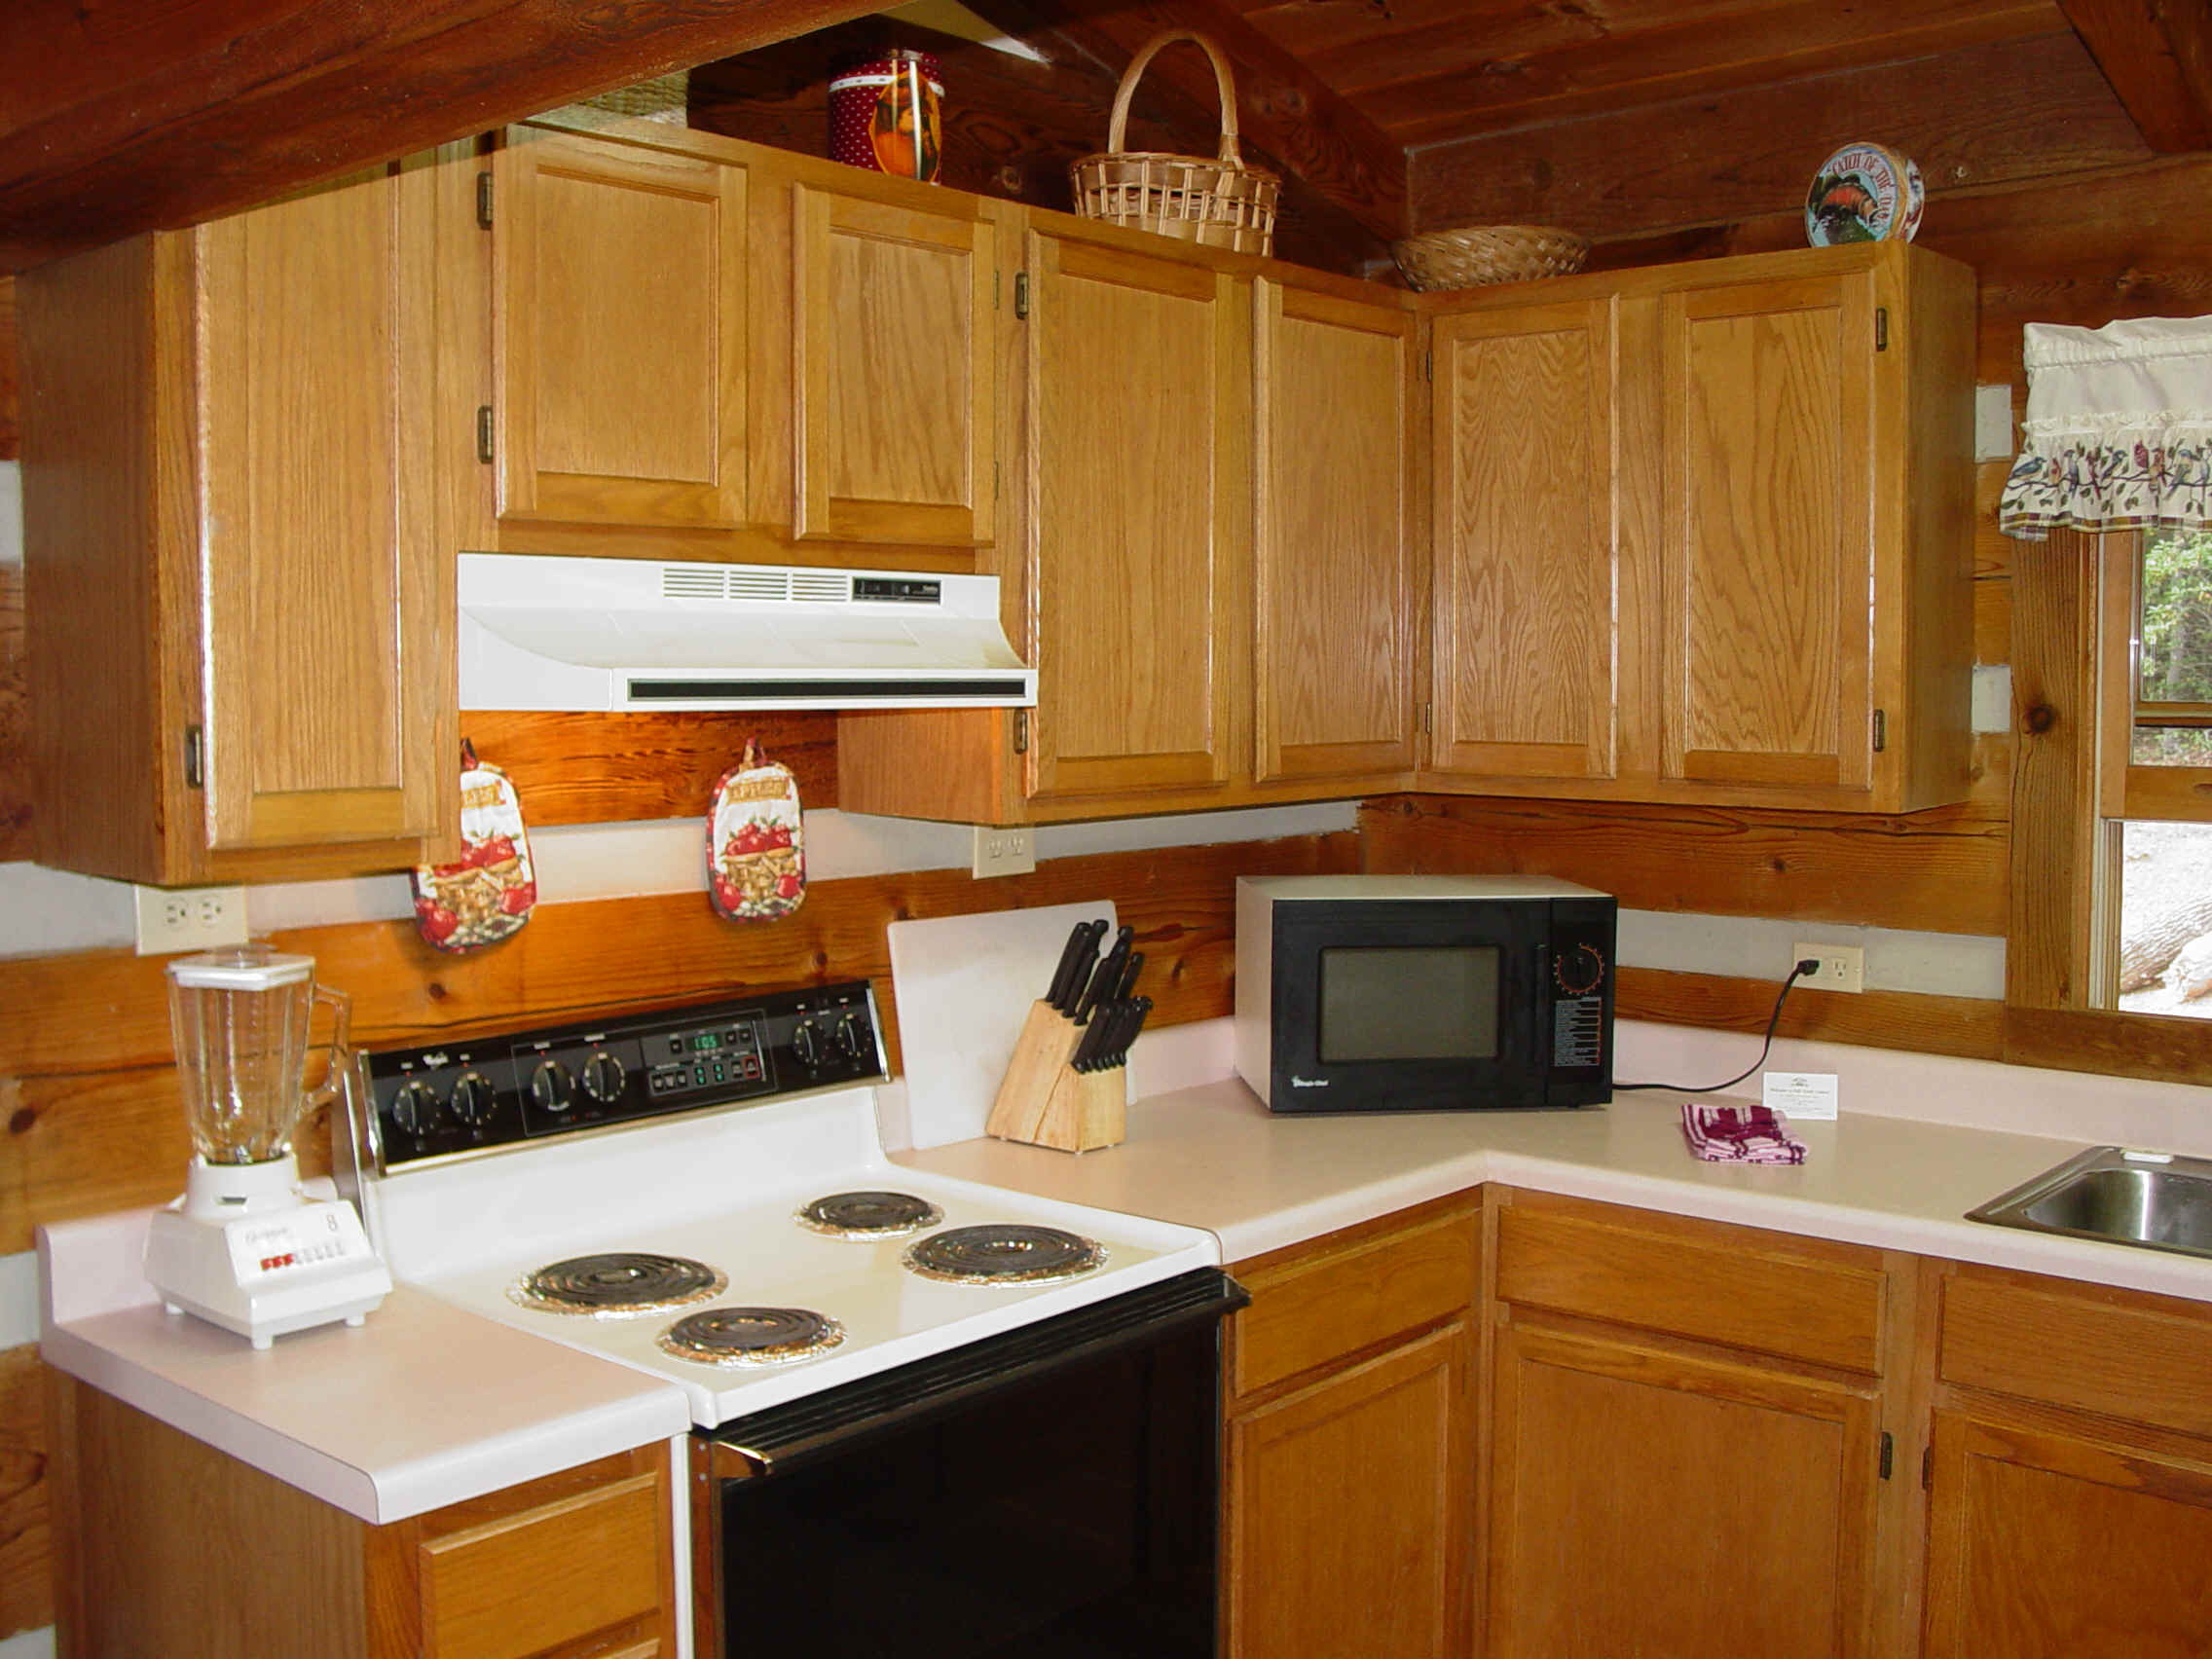 rent onlinechange our luxury near rentals cabin cabins rental in interior boone info mountain nc